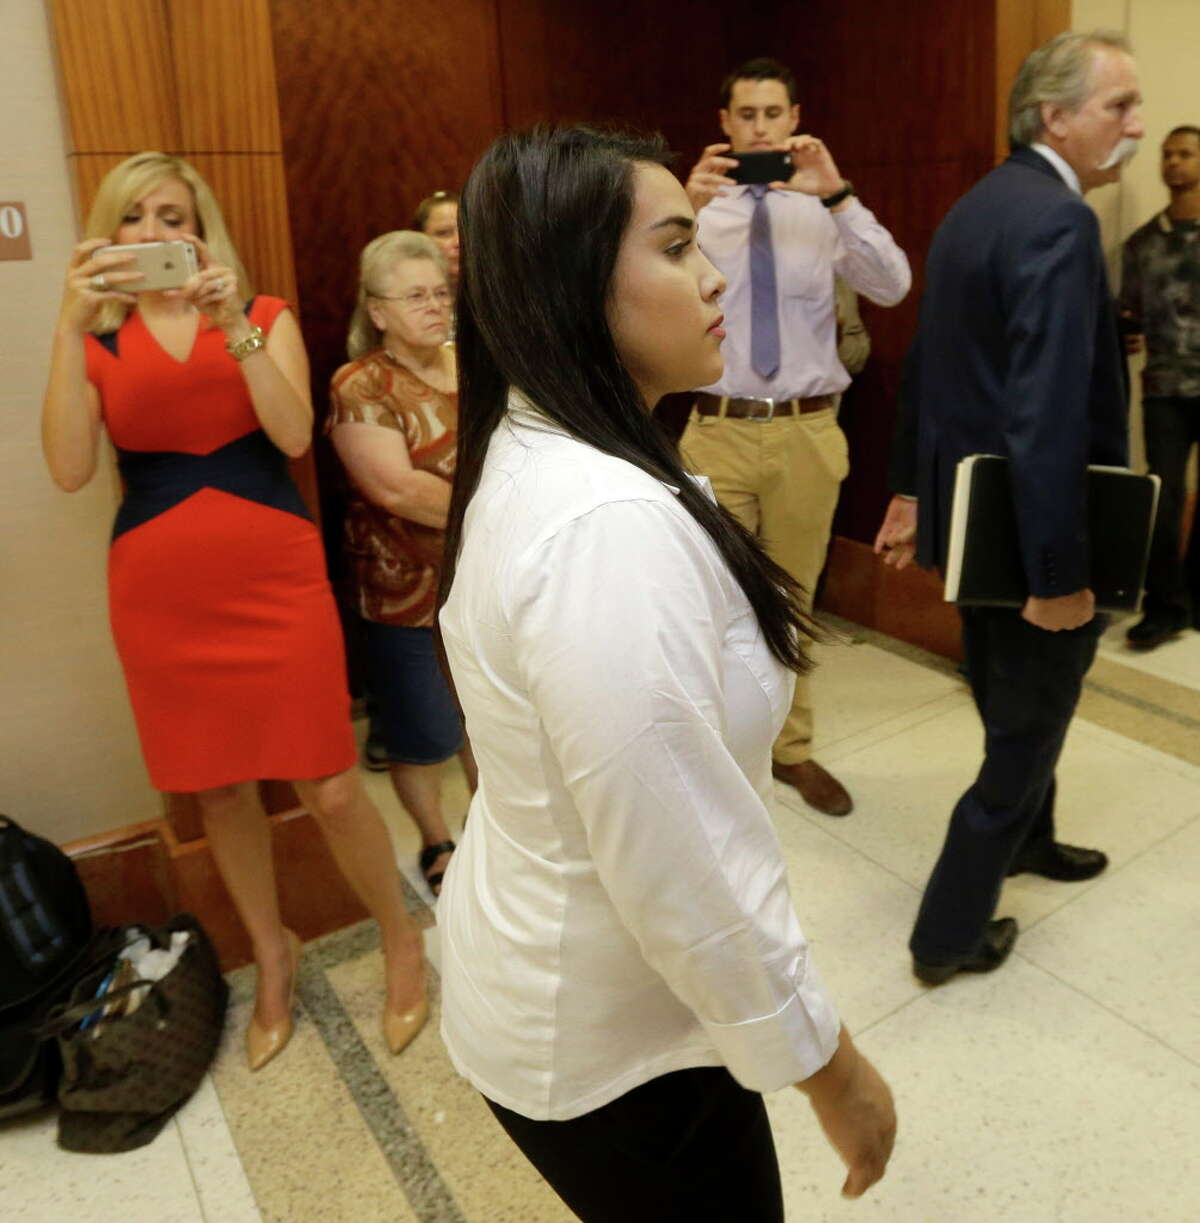 Alexandria Vera, 24, a former Aldine ISD teacher, arrives for court Wednesday, Aug. 3, 2016, in Houston. She is accused of having a long-term sexual relationship with a 13-year-old boy. State District Judge Michael McSpadden rejected a request from prosecutors that Vera's bail be revoked for a curfew violation. Vera is free on a $100,000 bail but has to wear a GPS ankle monitor, stay away from schools and have no contact with the teen who allegedly impregnated her.